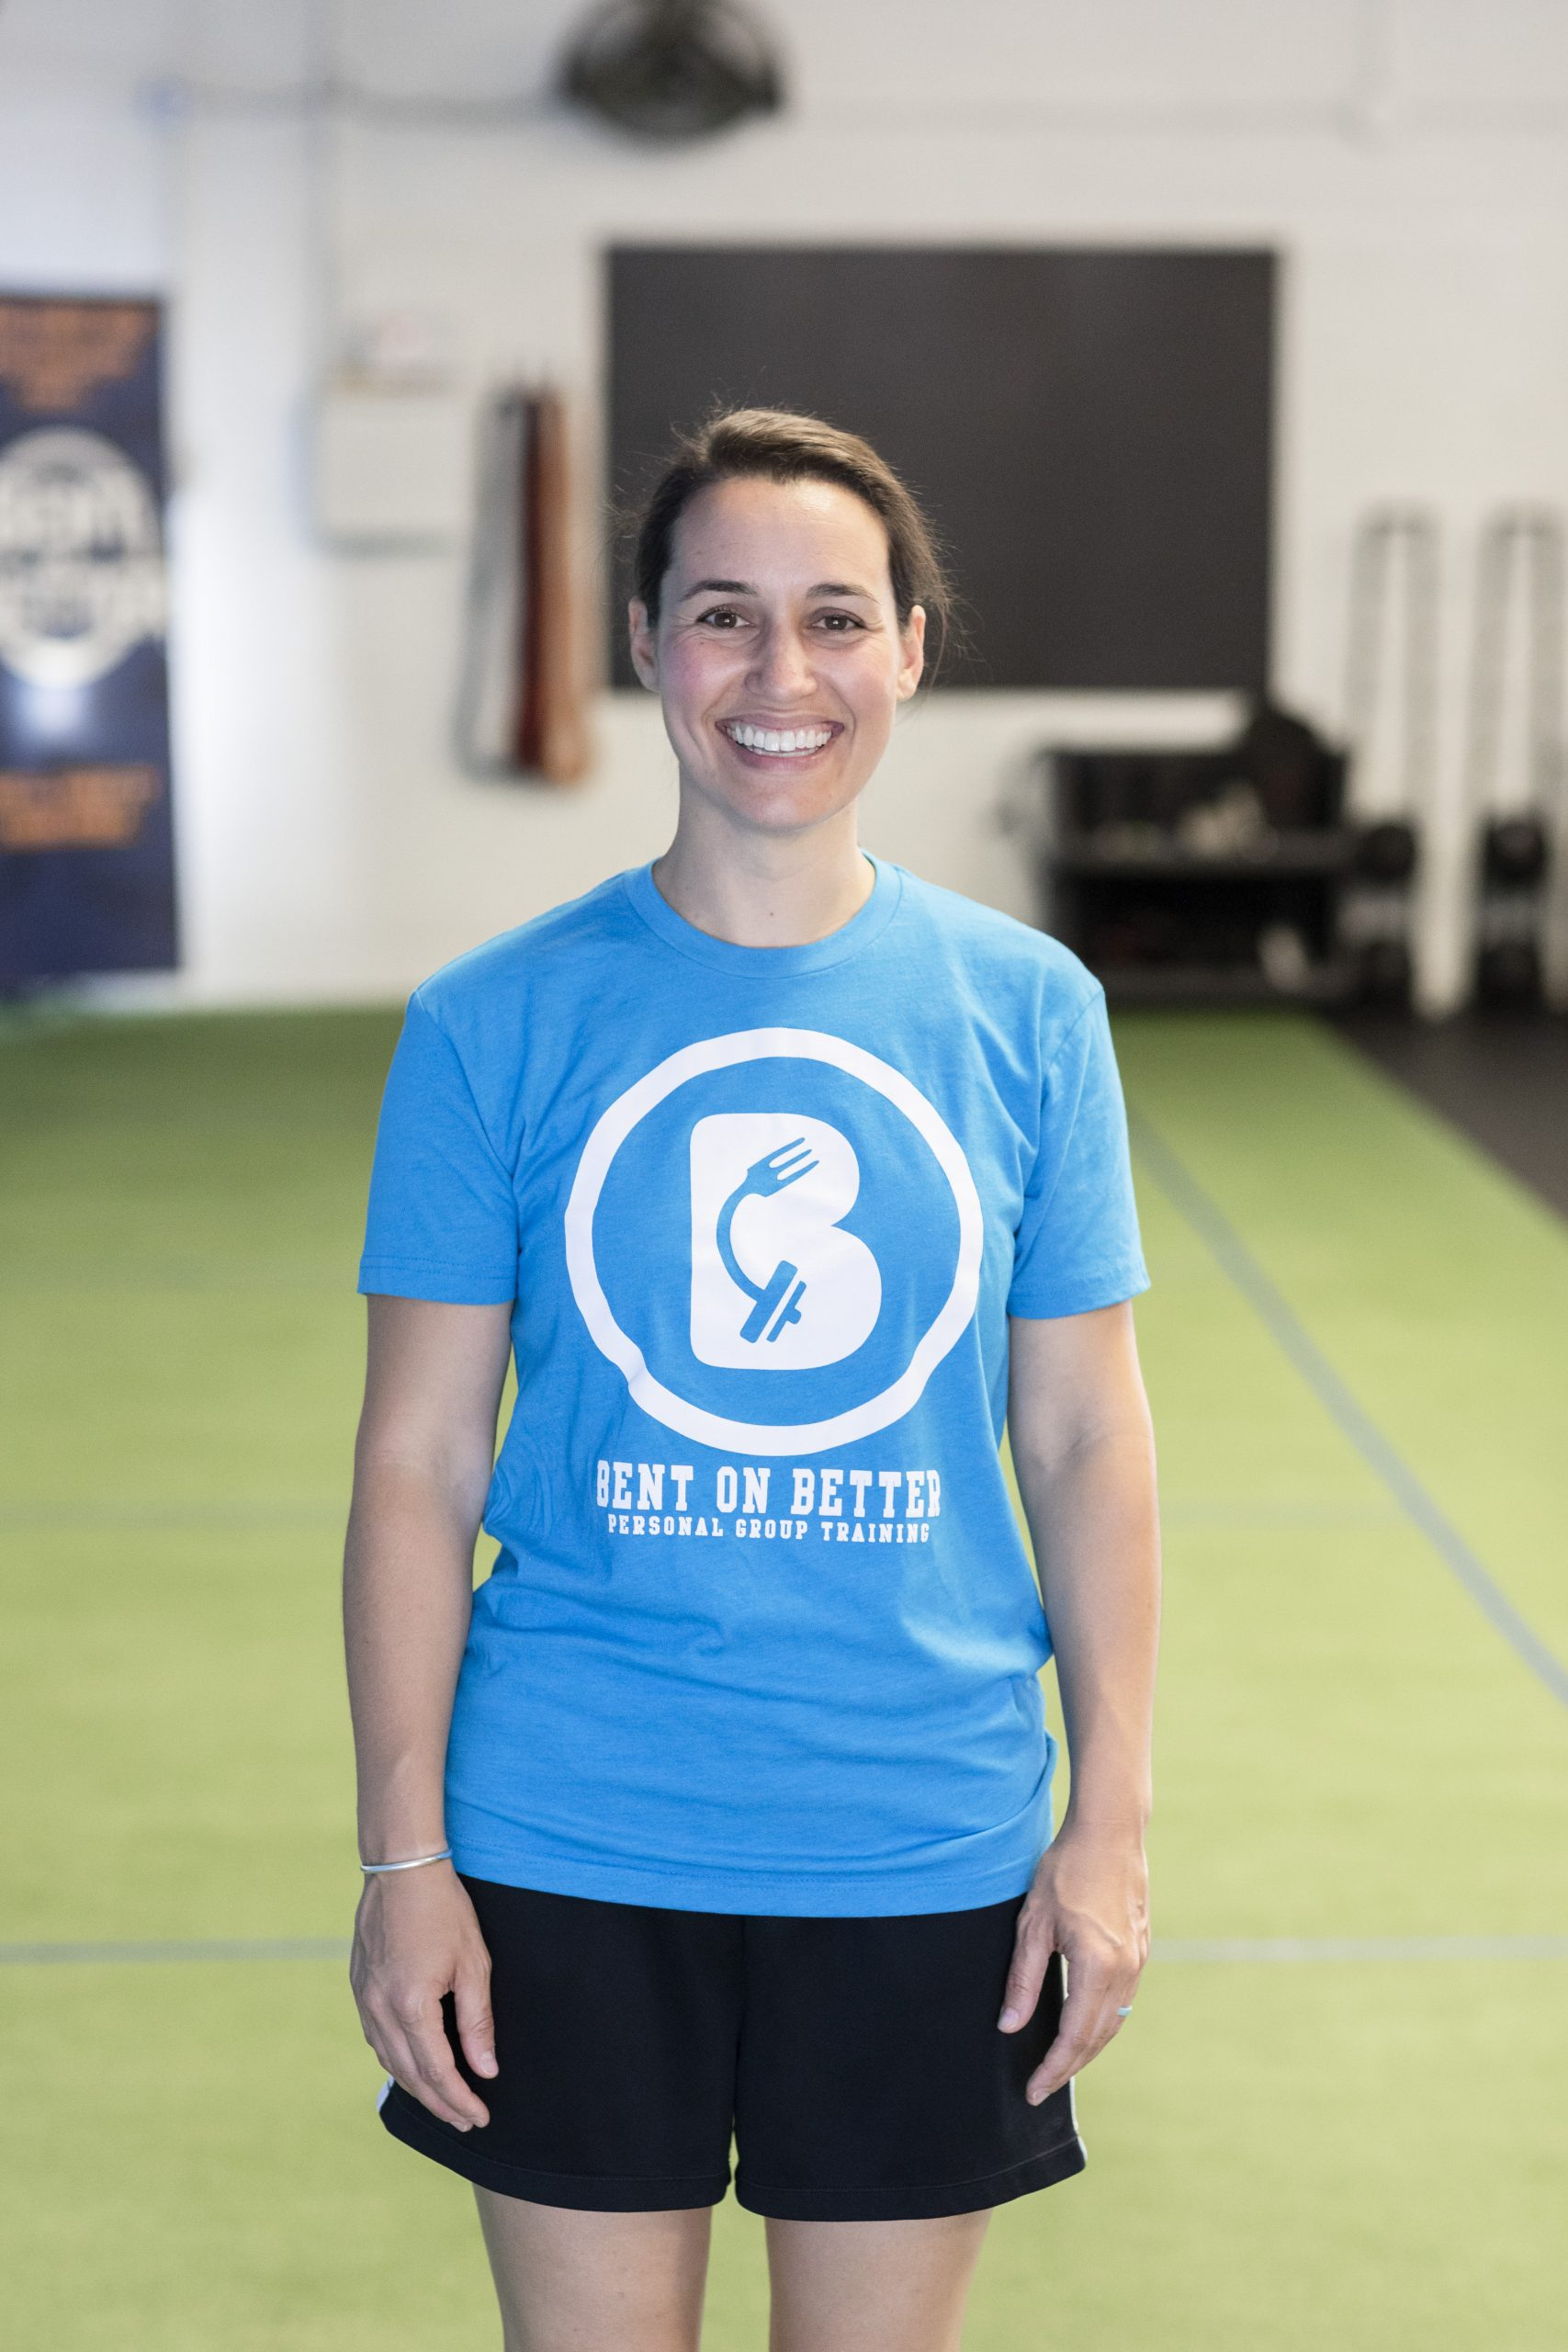 gyms in west chester- Bent On Better - personal trainers - Lynn April